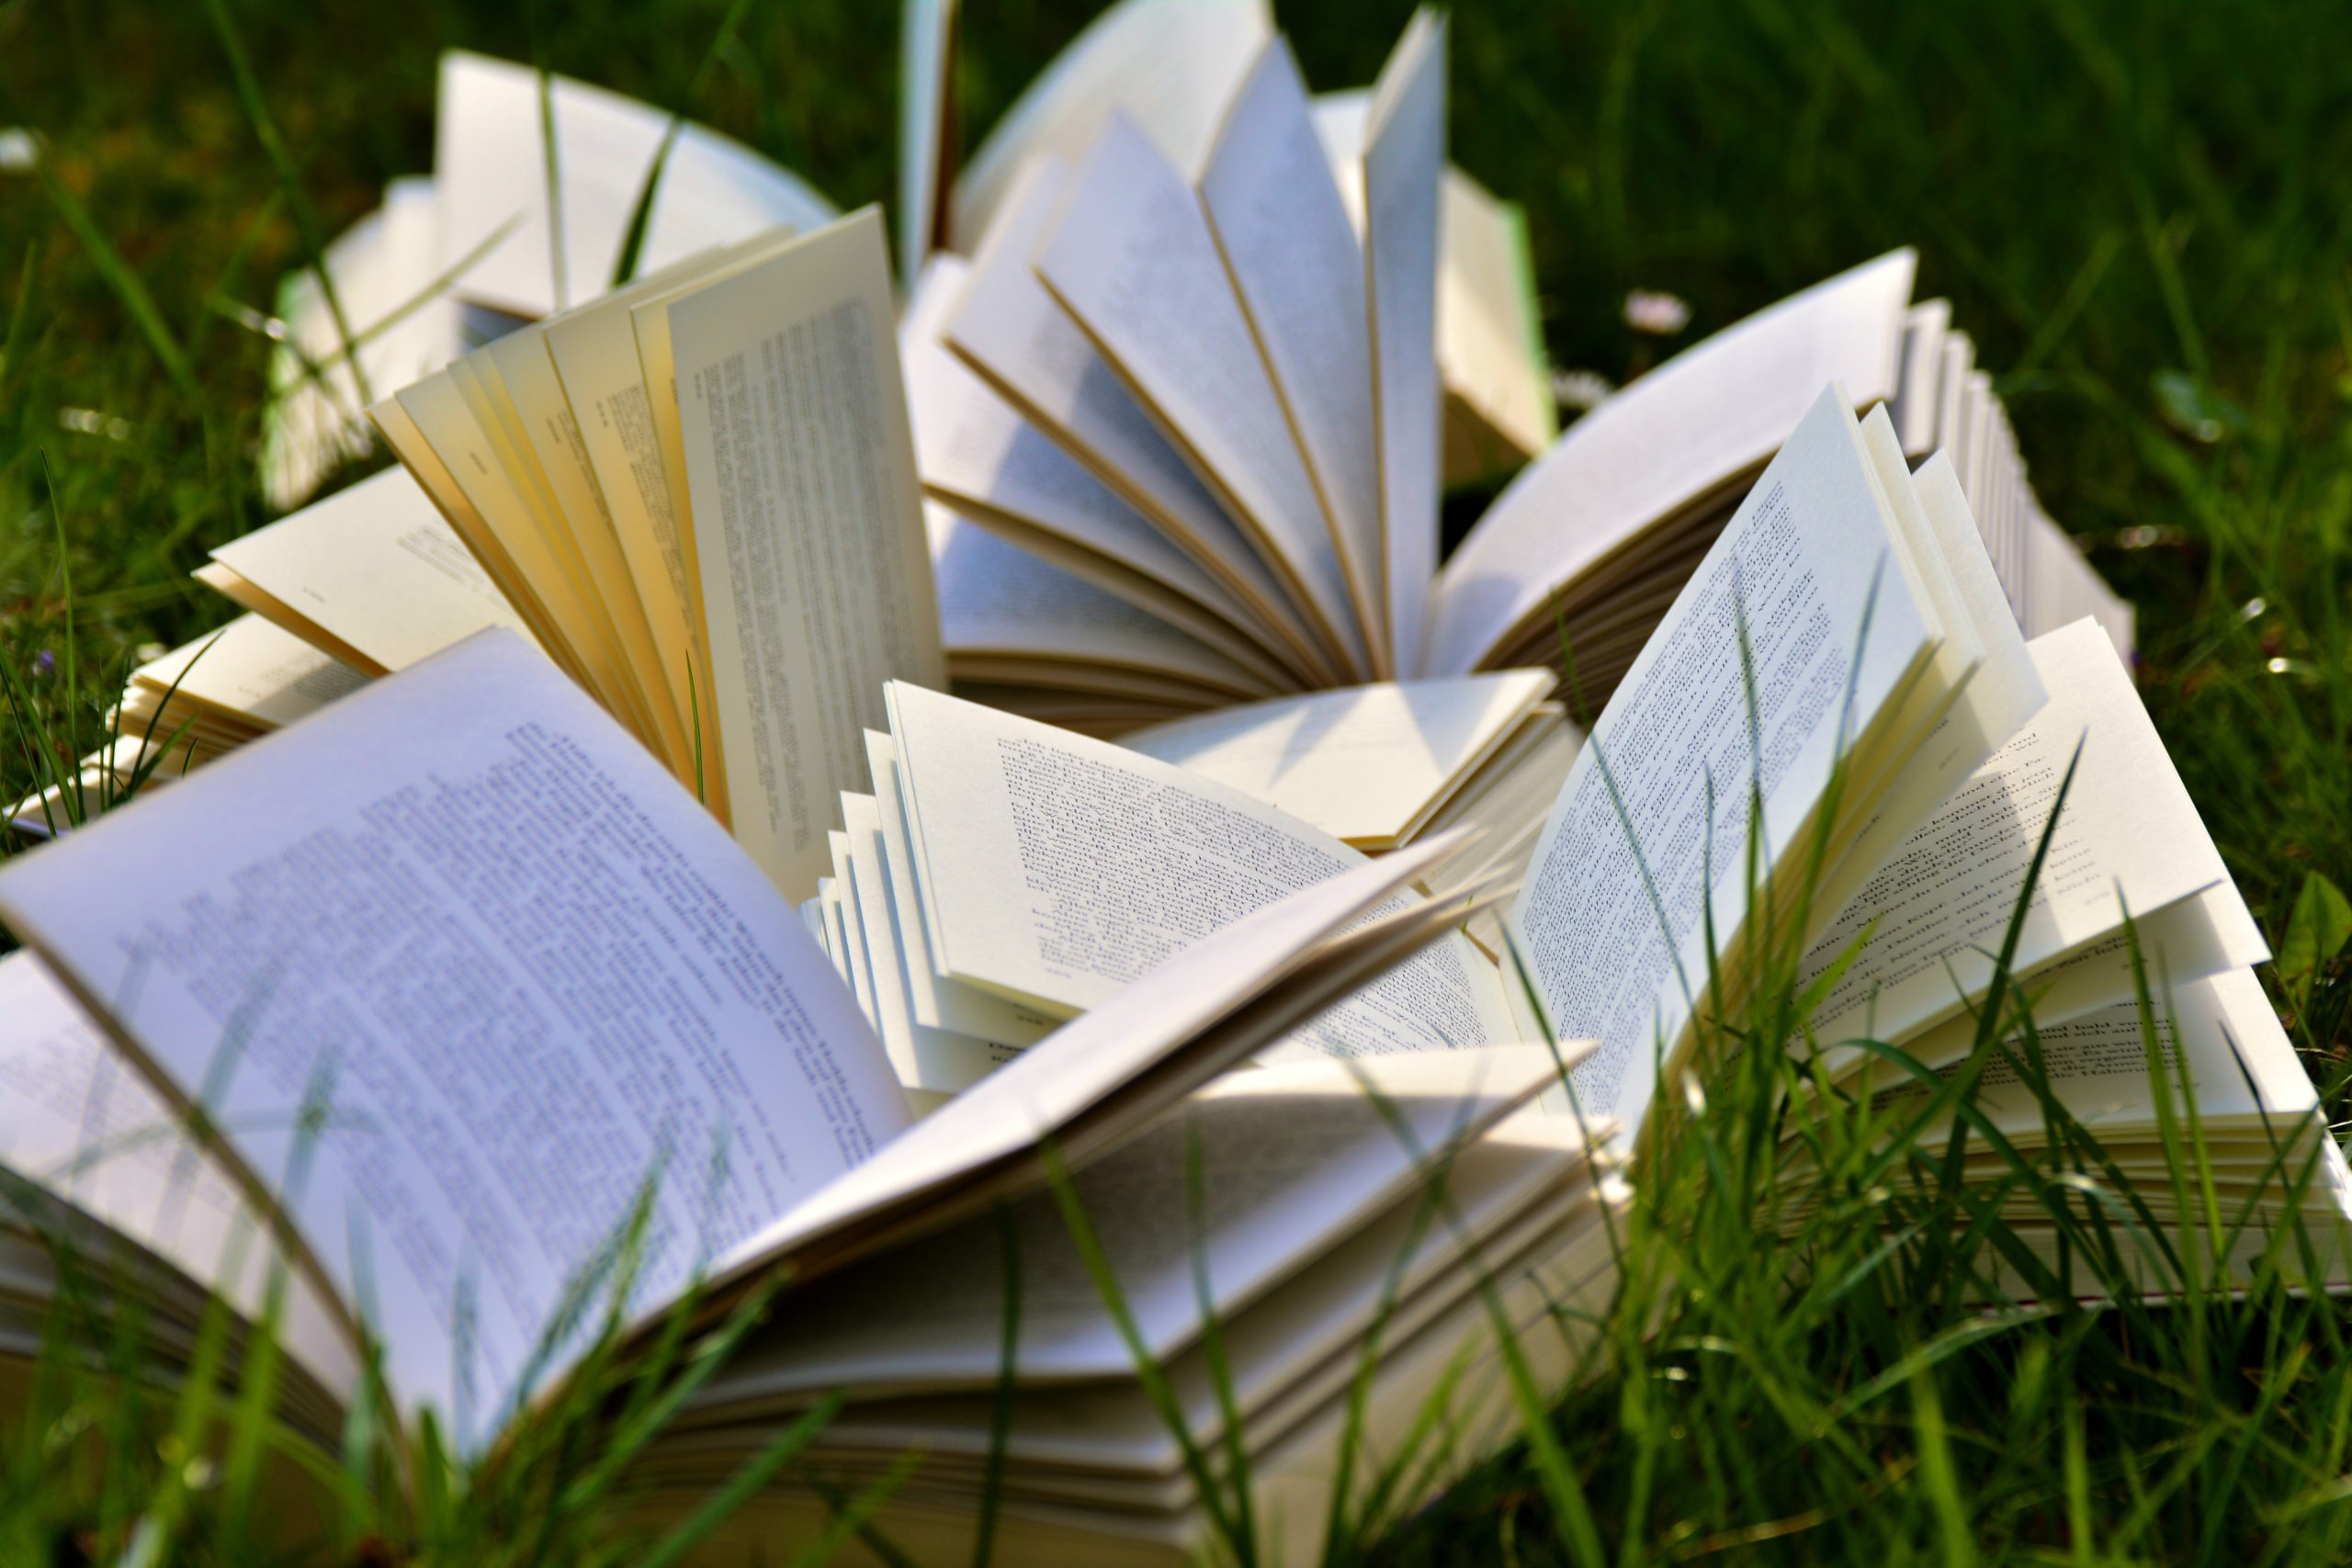 a collection of open books laid out on grass in sunshine